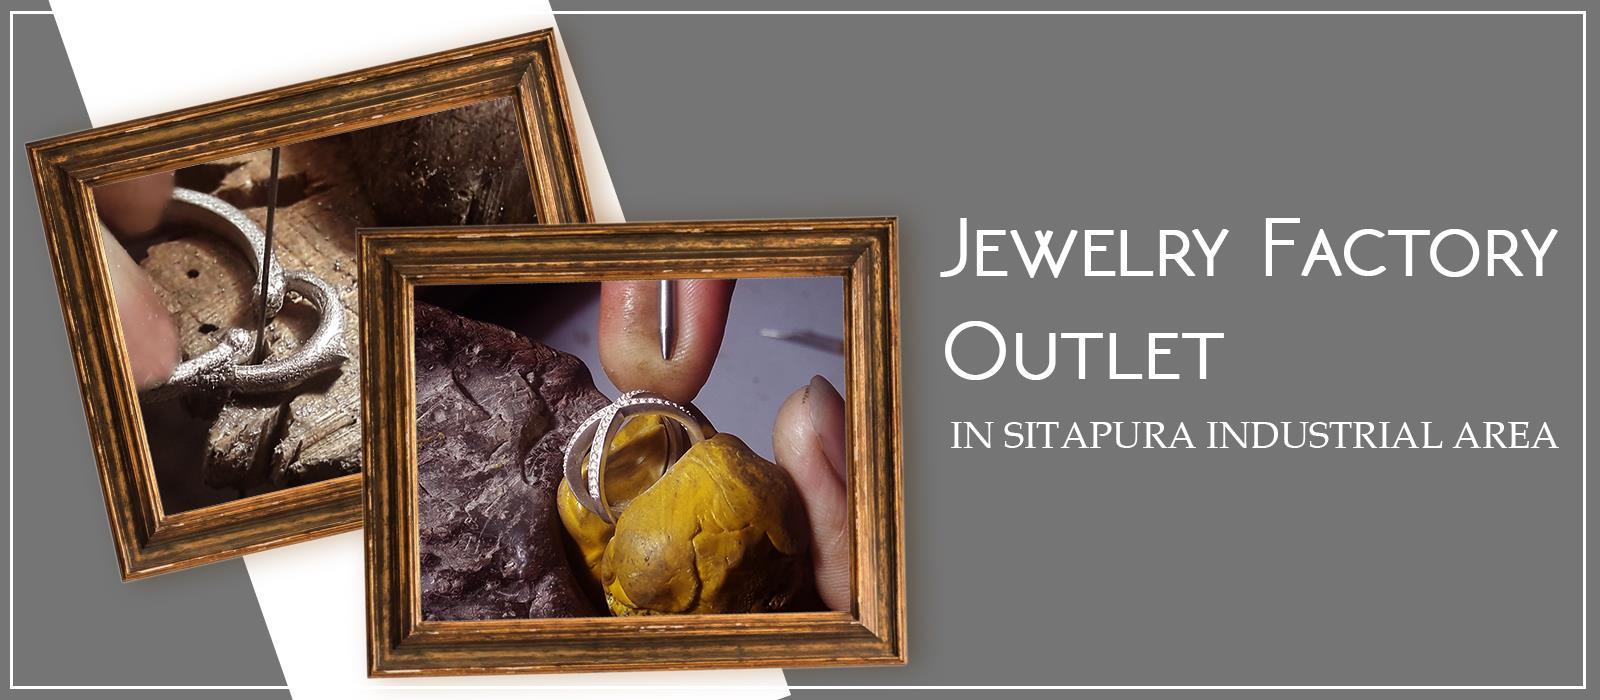 Jewelry Factory Outlet In Jaipur